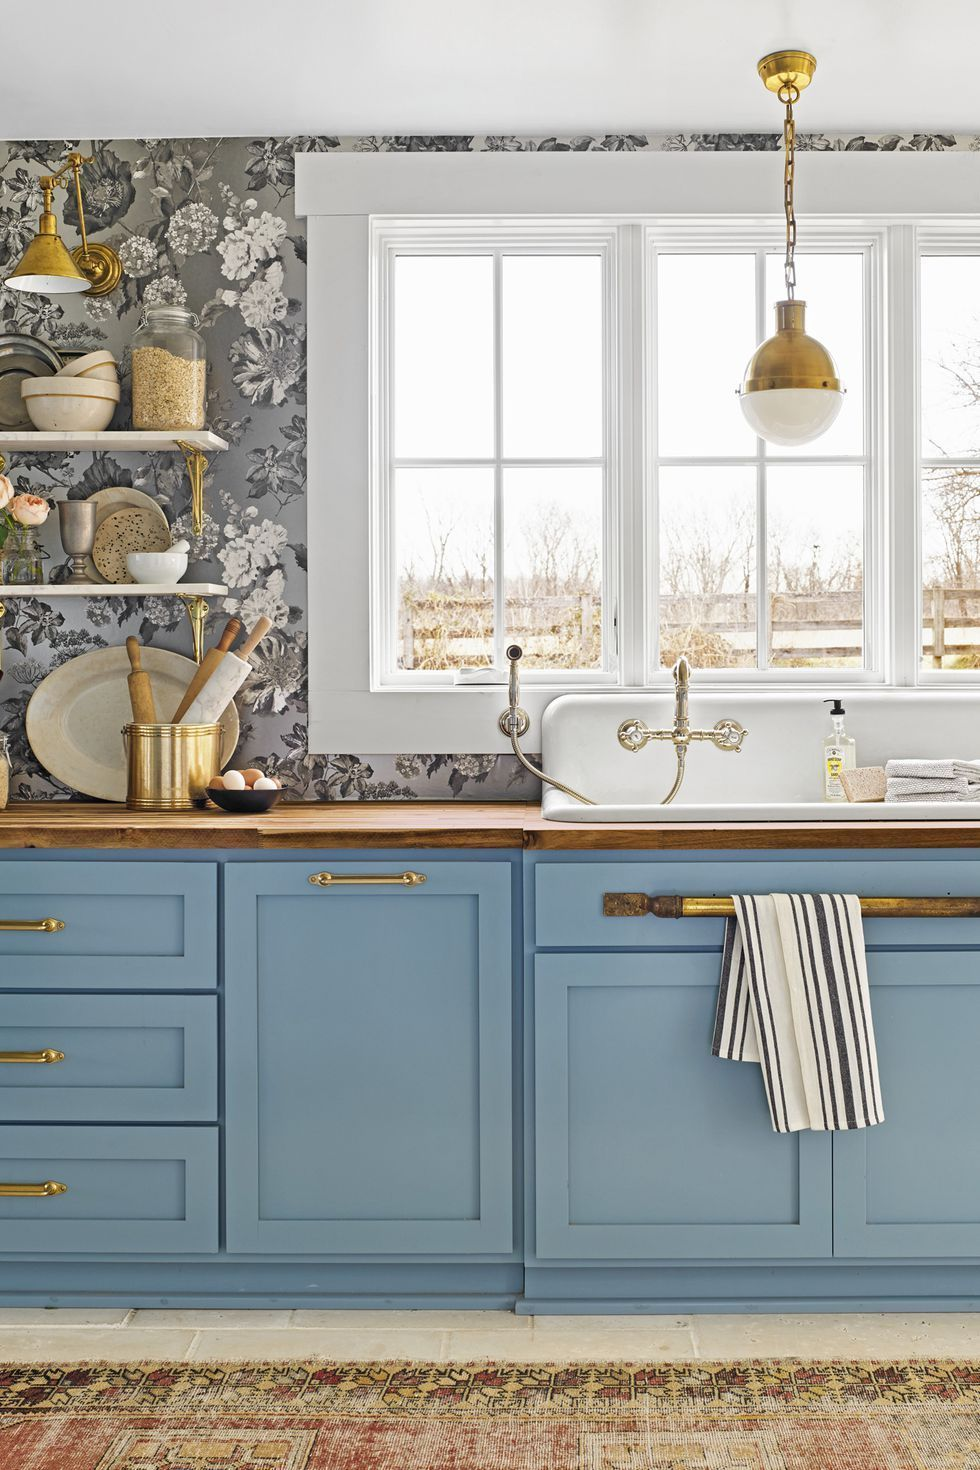 32 Kitchen Trends For 2020 That We Predict Will Be Everywhere In